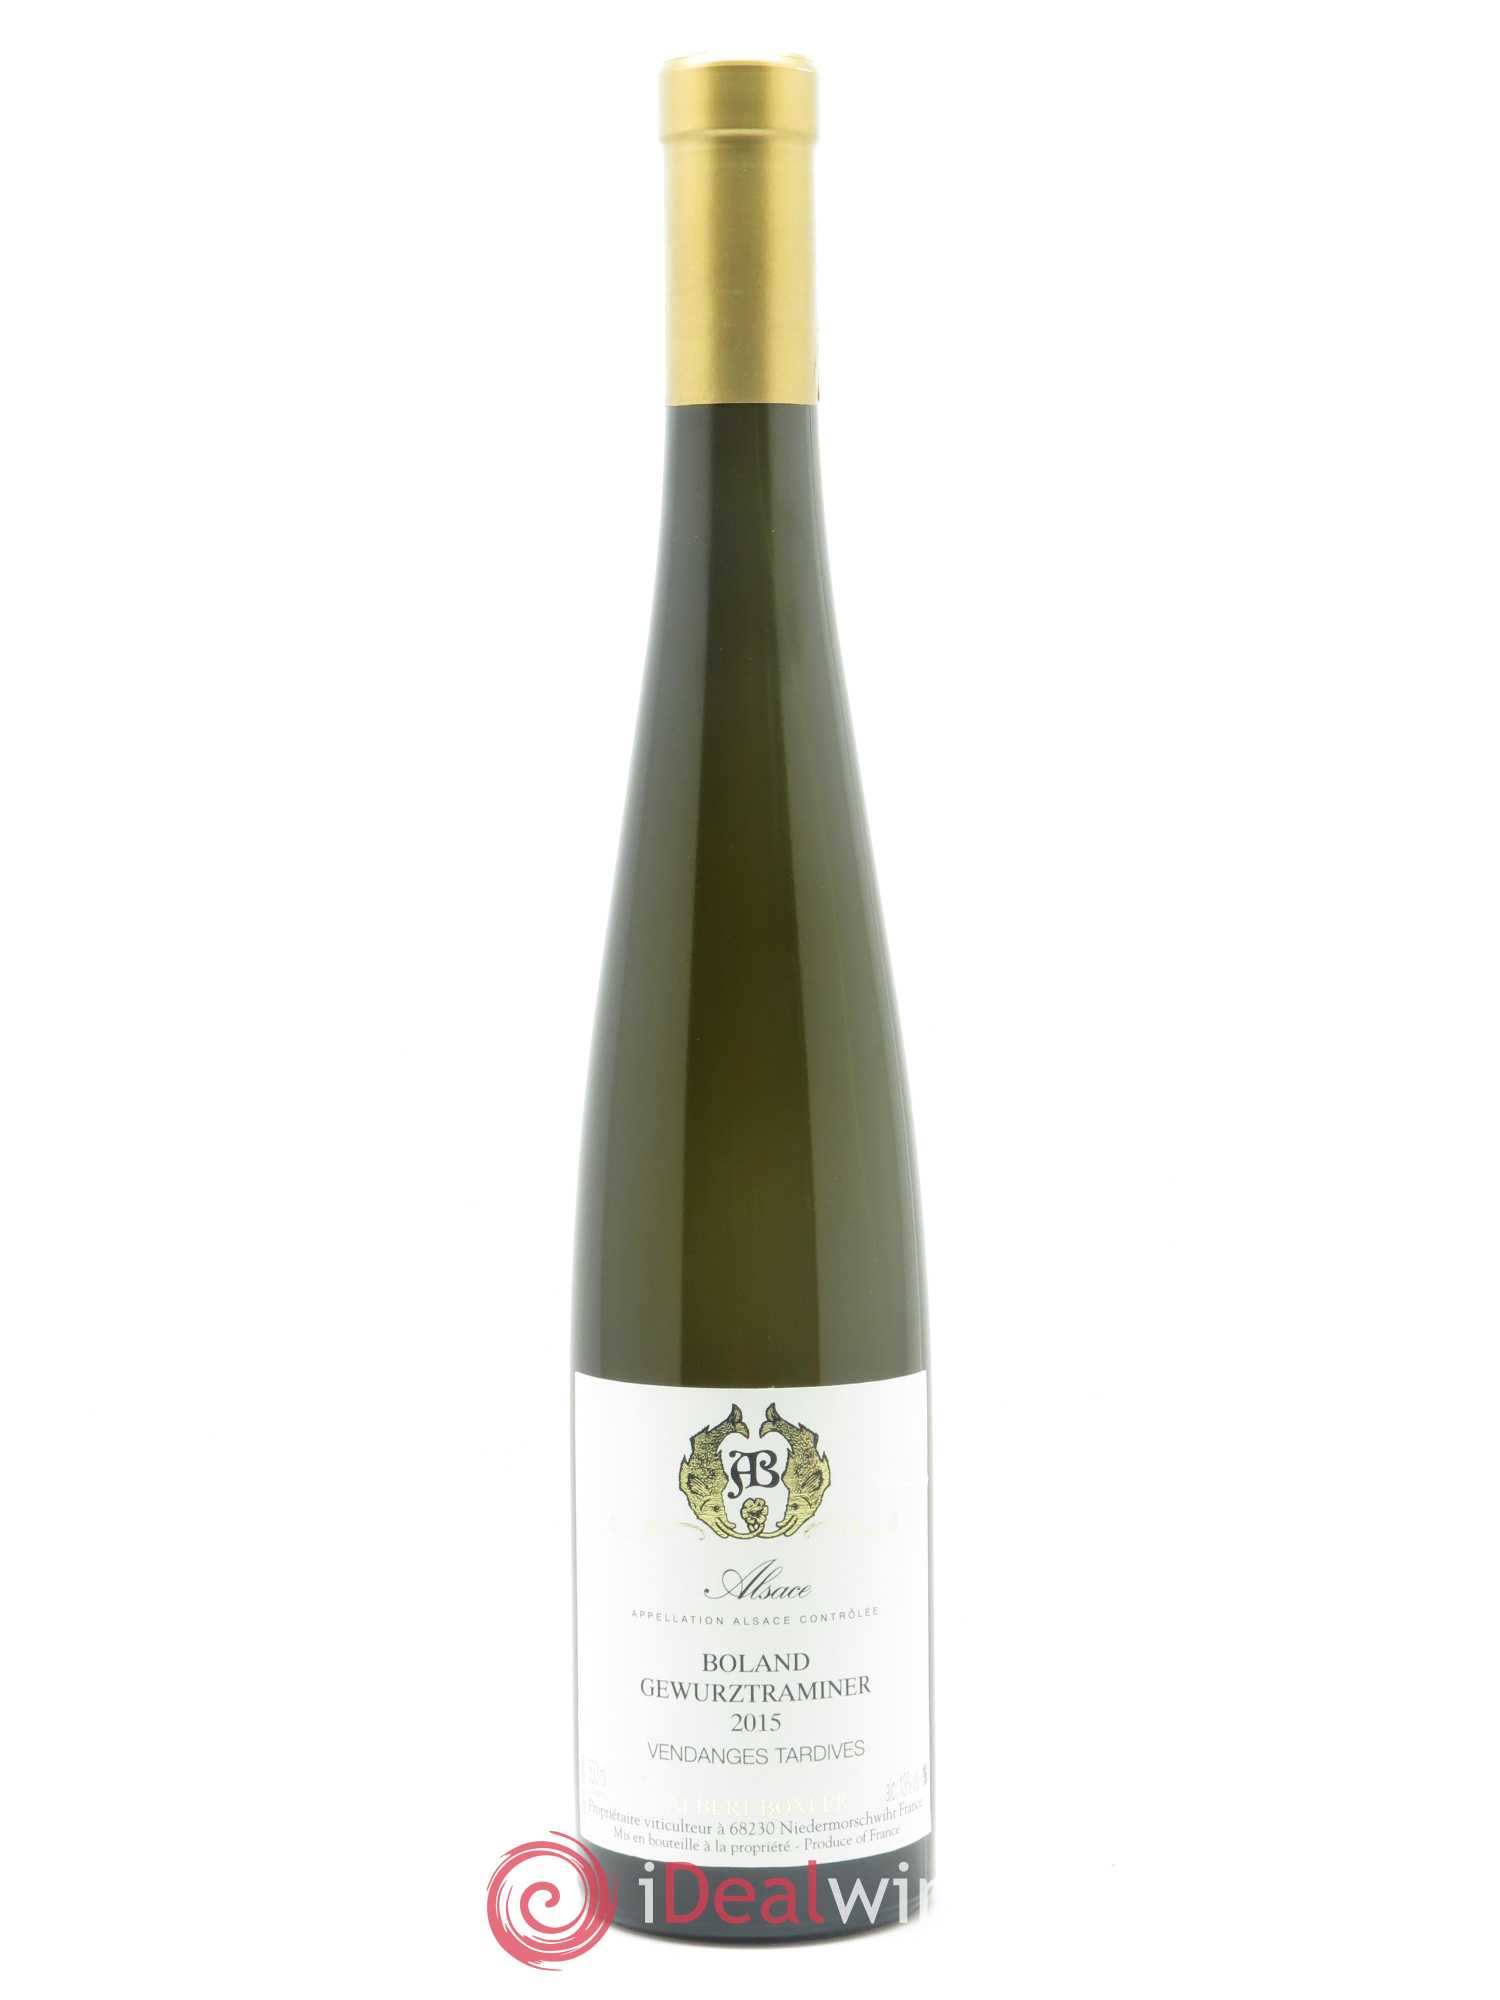 Gewurztraminer Boland Vendages Tardives Albert Boxler  2015 - Lot of 1 Bottle